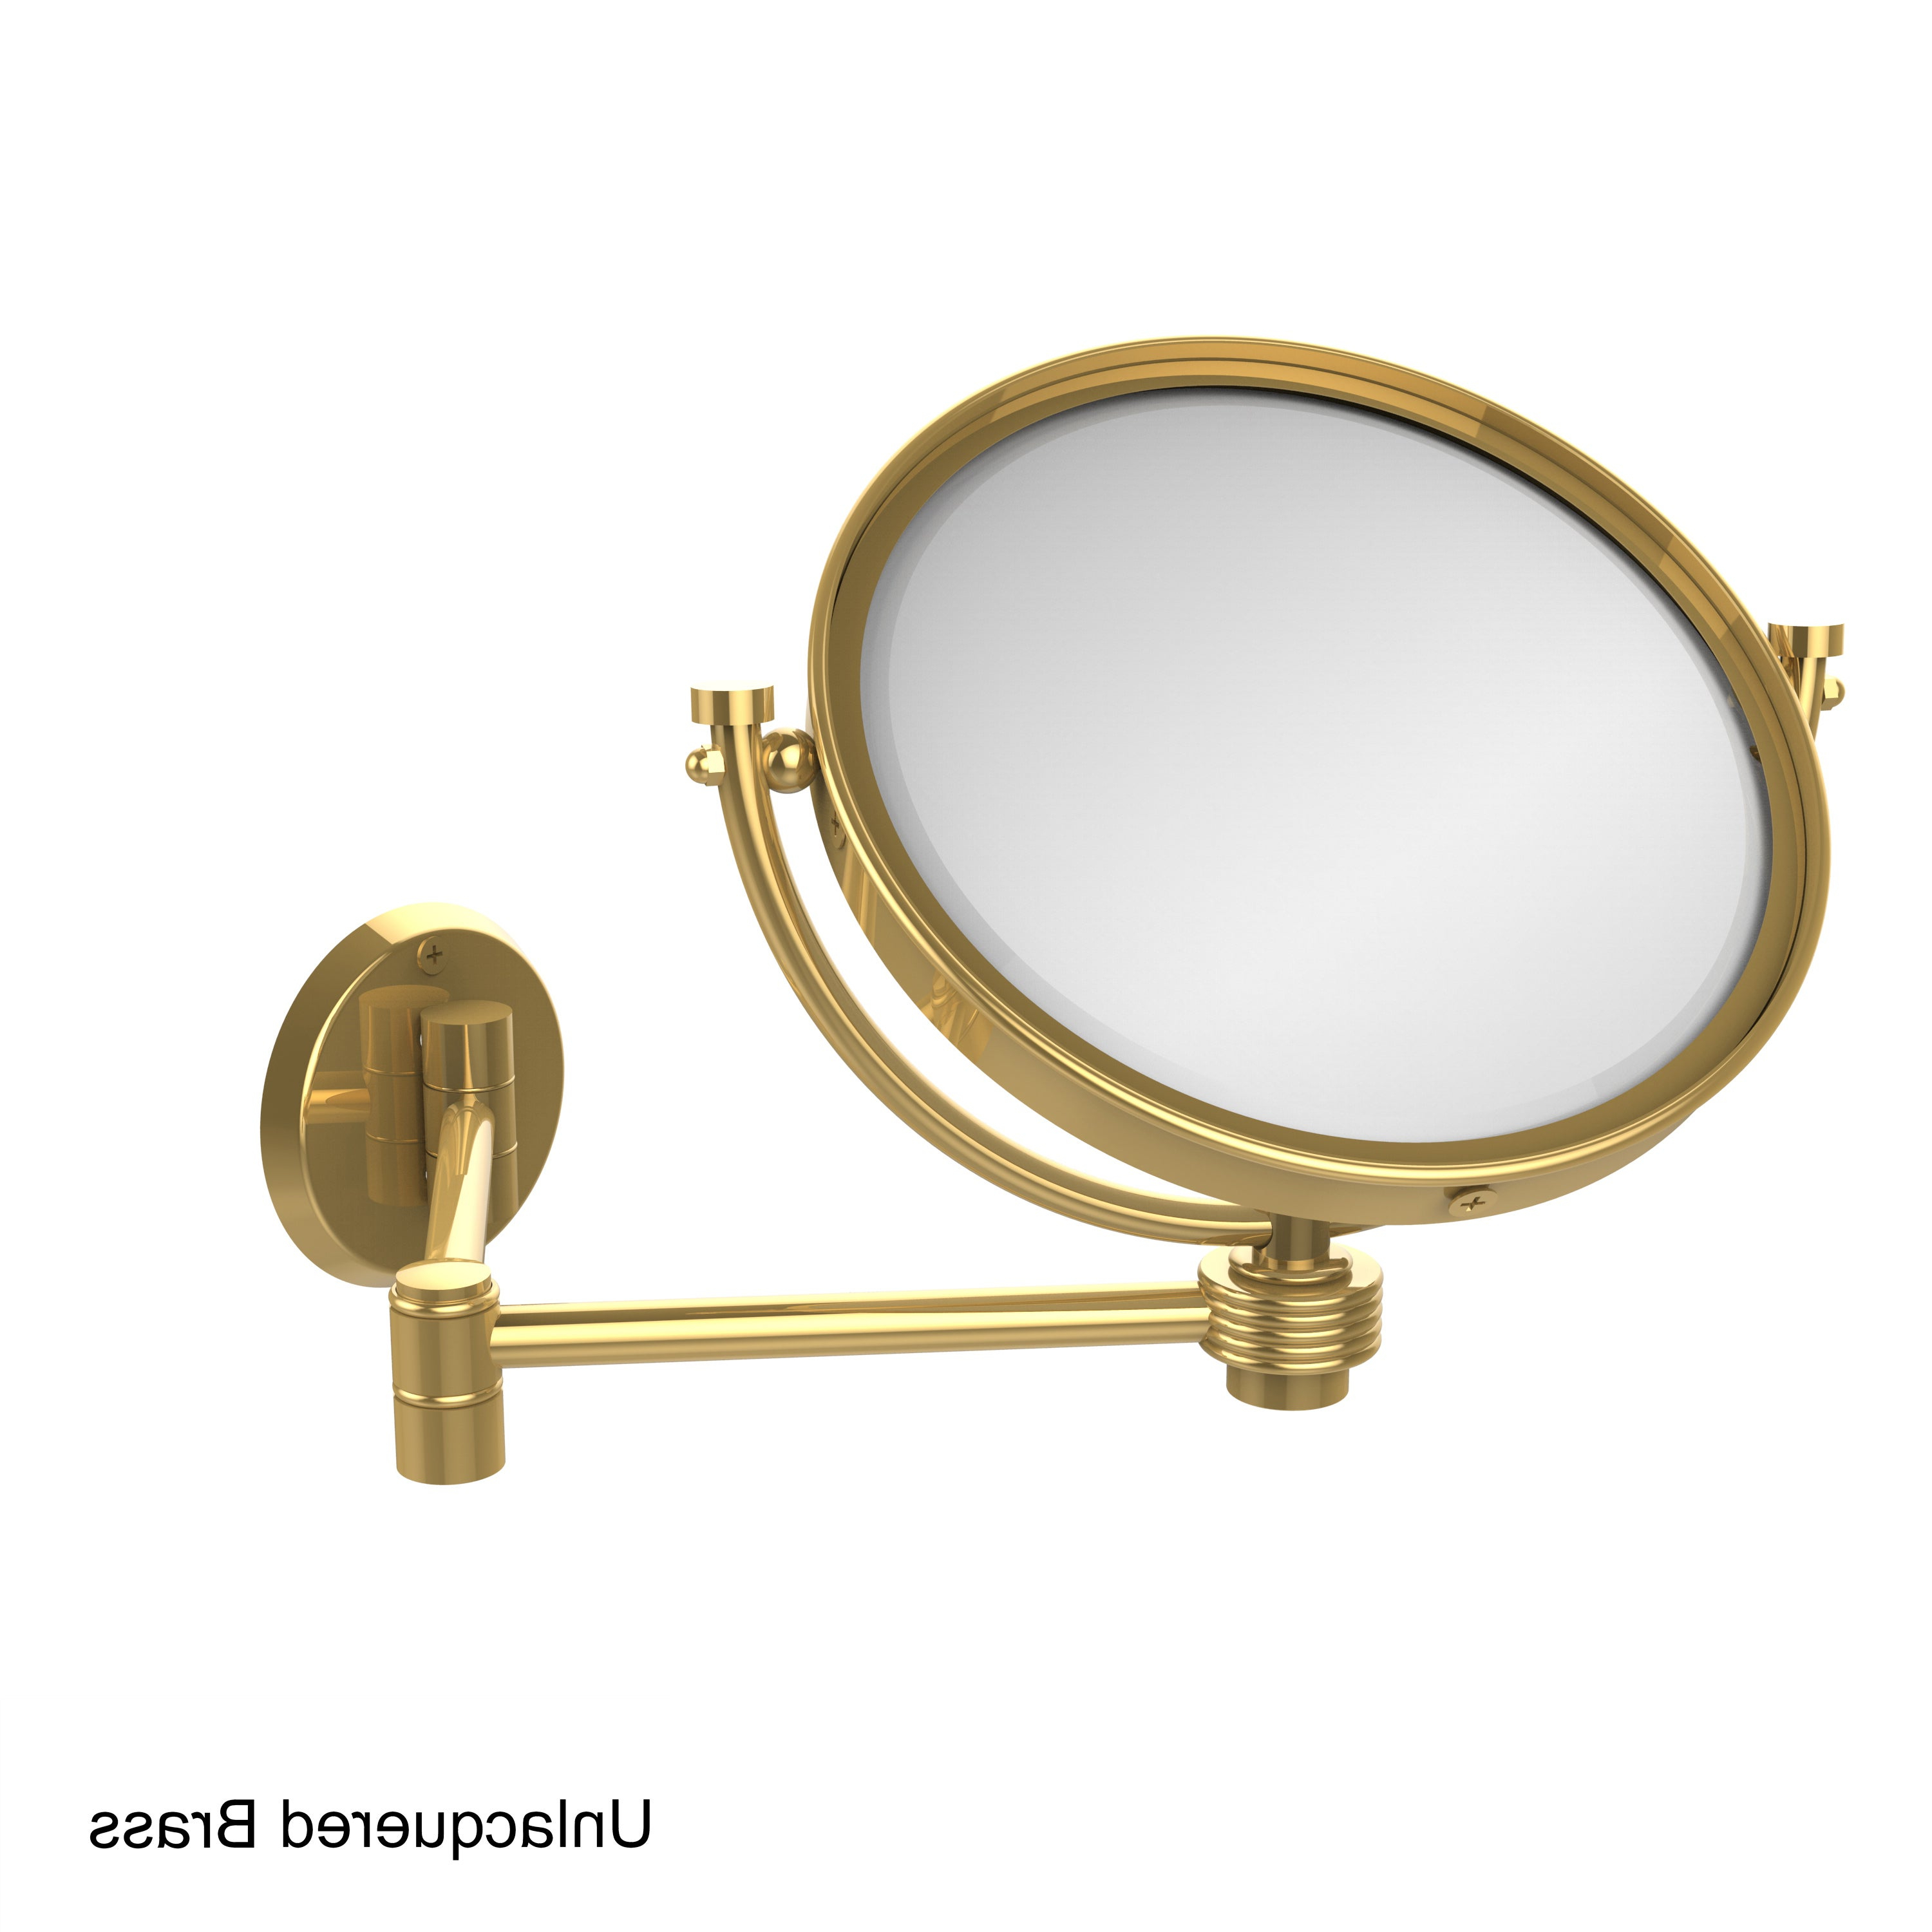 Extending Wall Mirrors Regarding Most Recent Allied Brass 8 Inch Wall Mounted Extending 2X Magnification Makeup Mirror  With Groovy Accent (Gallery 14 of 20)